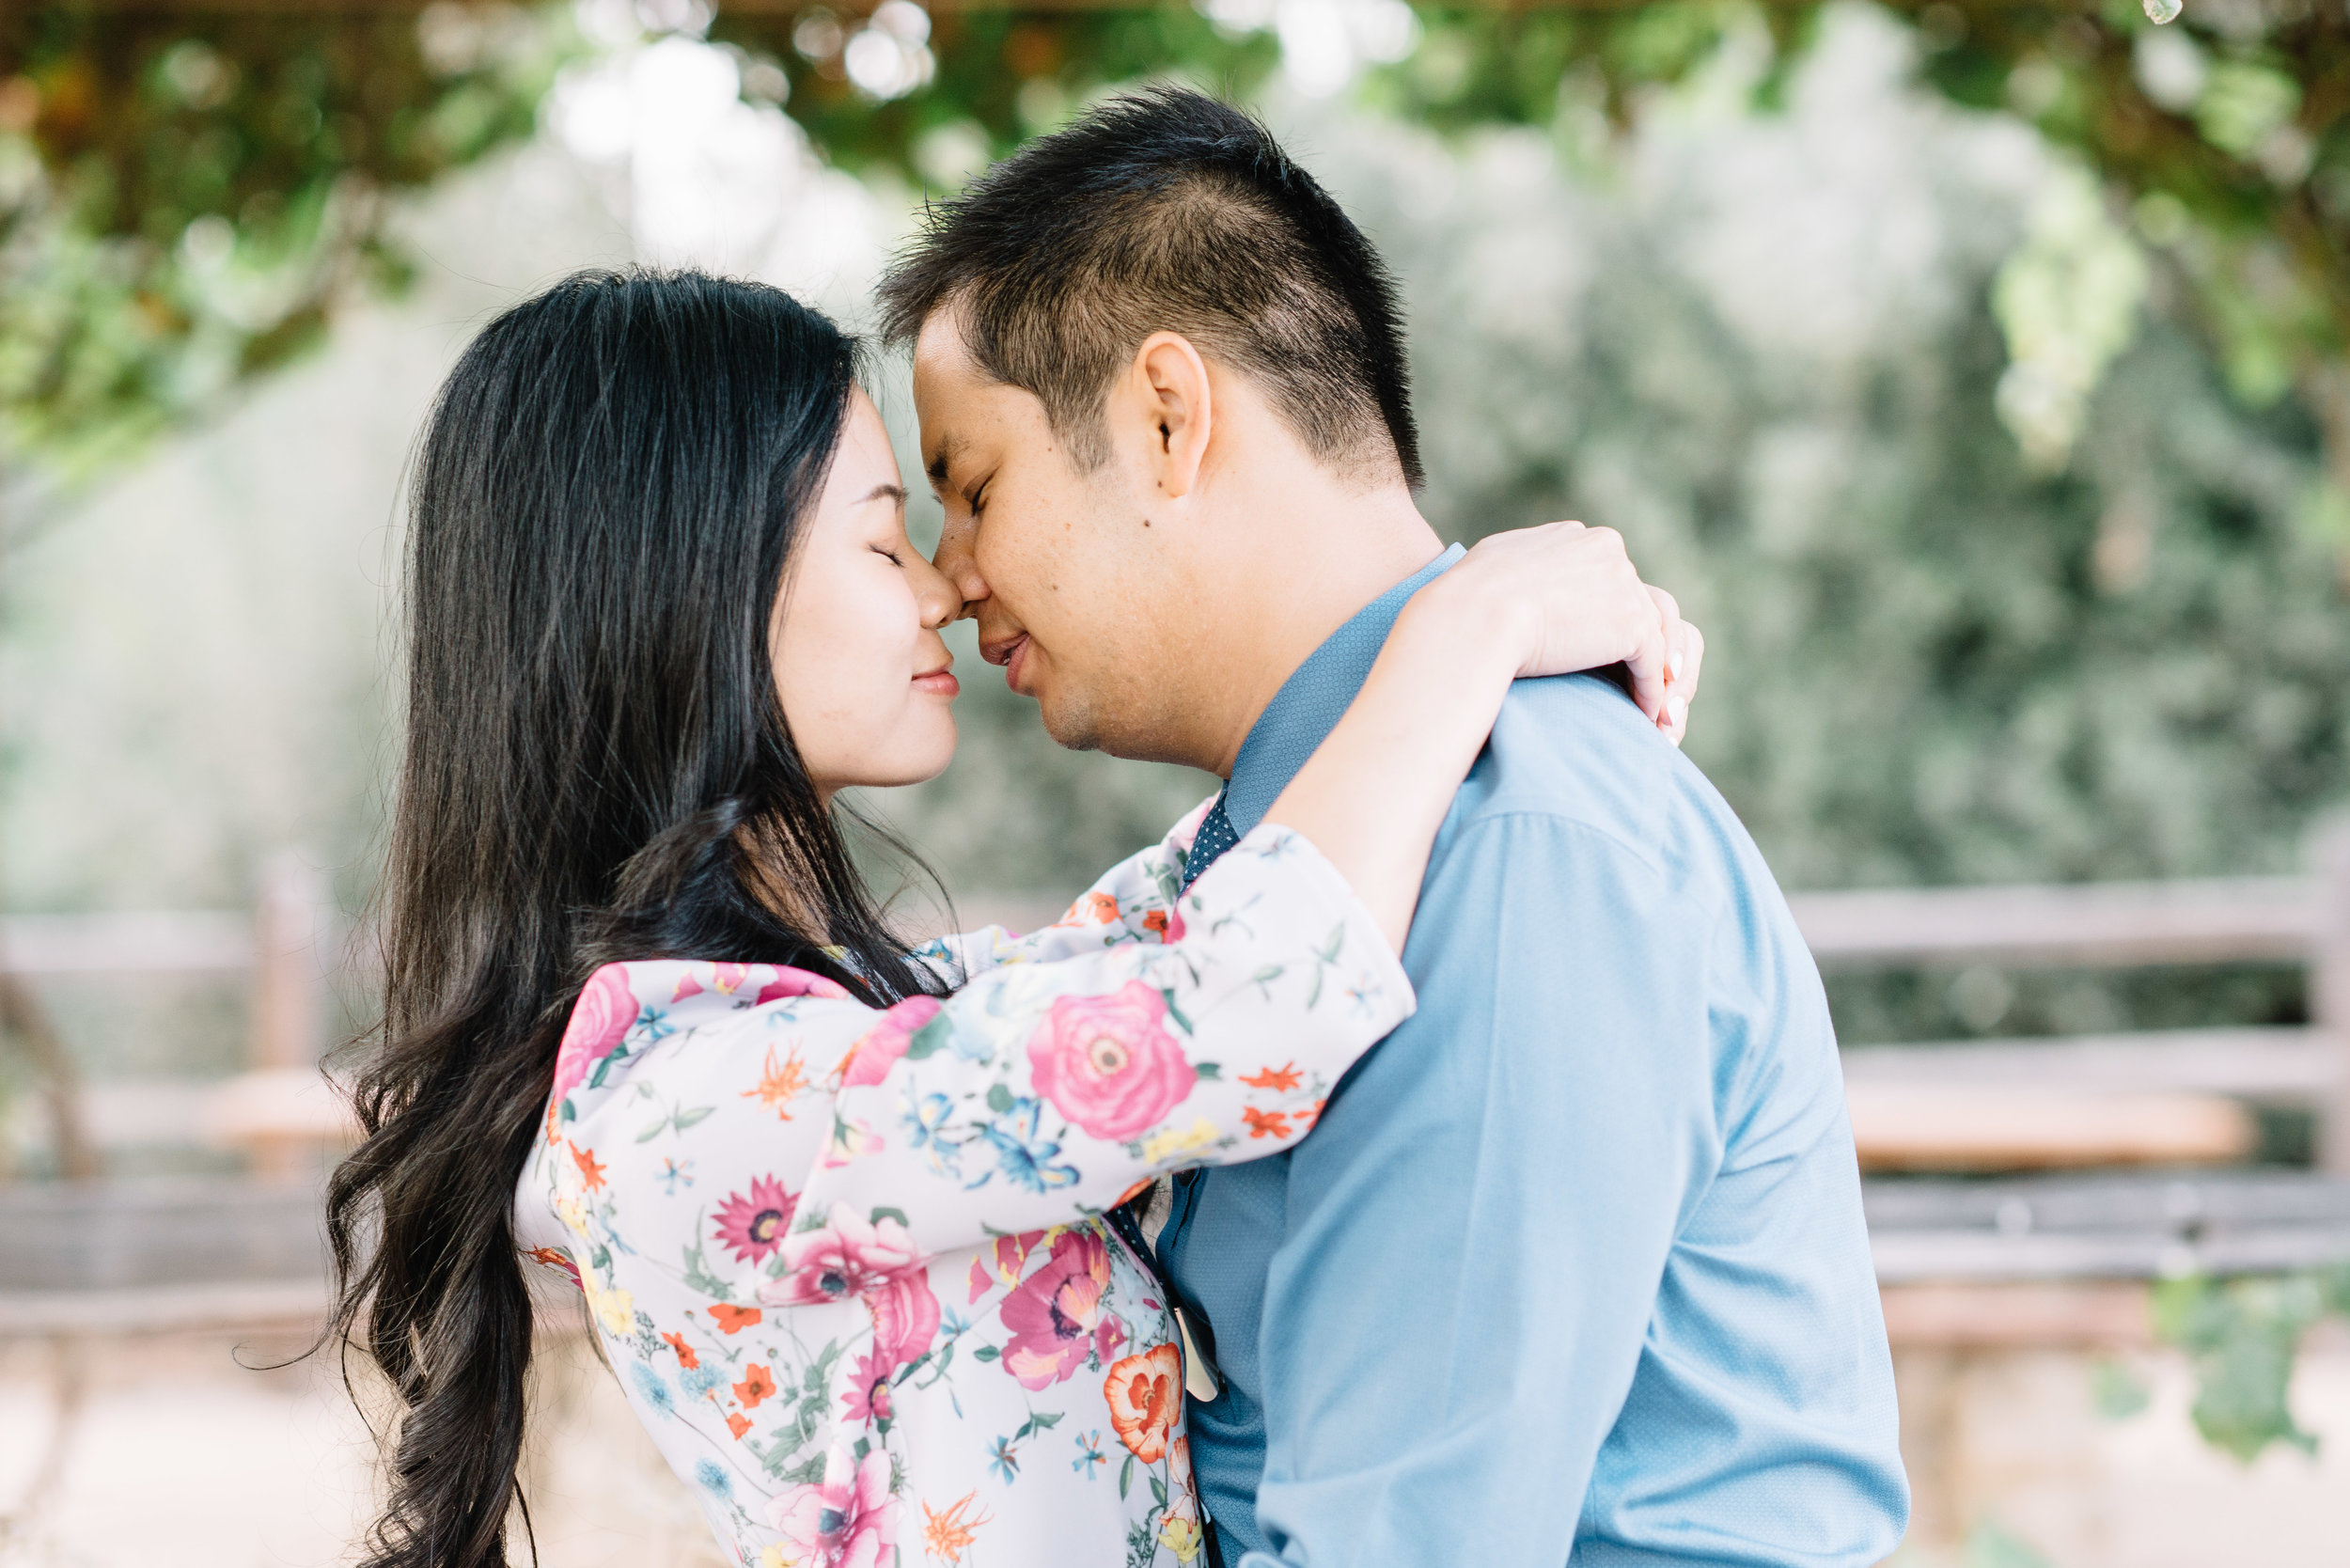 jennifer-jayn-photography-san-juan-capistrano-engagement-session-06.jpg